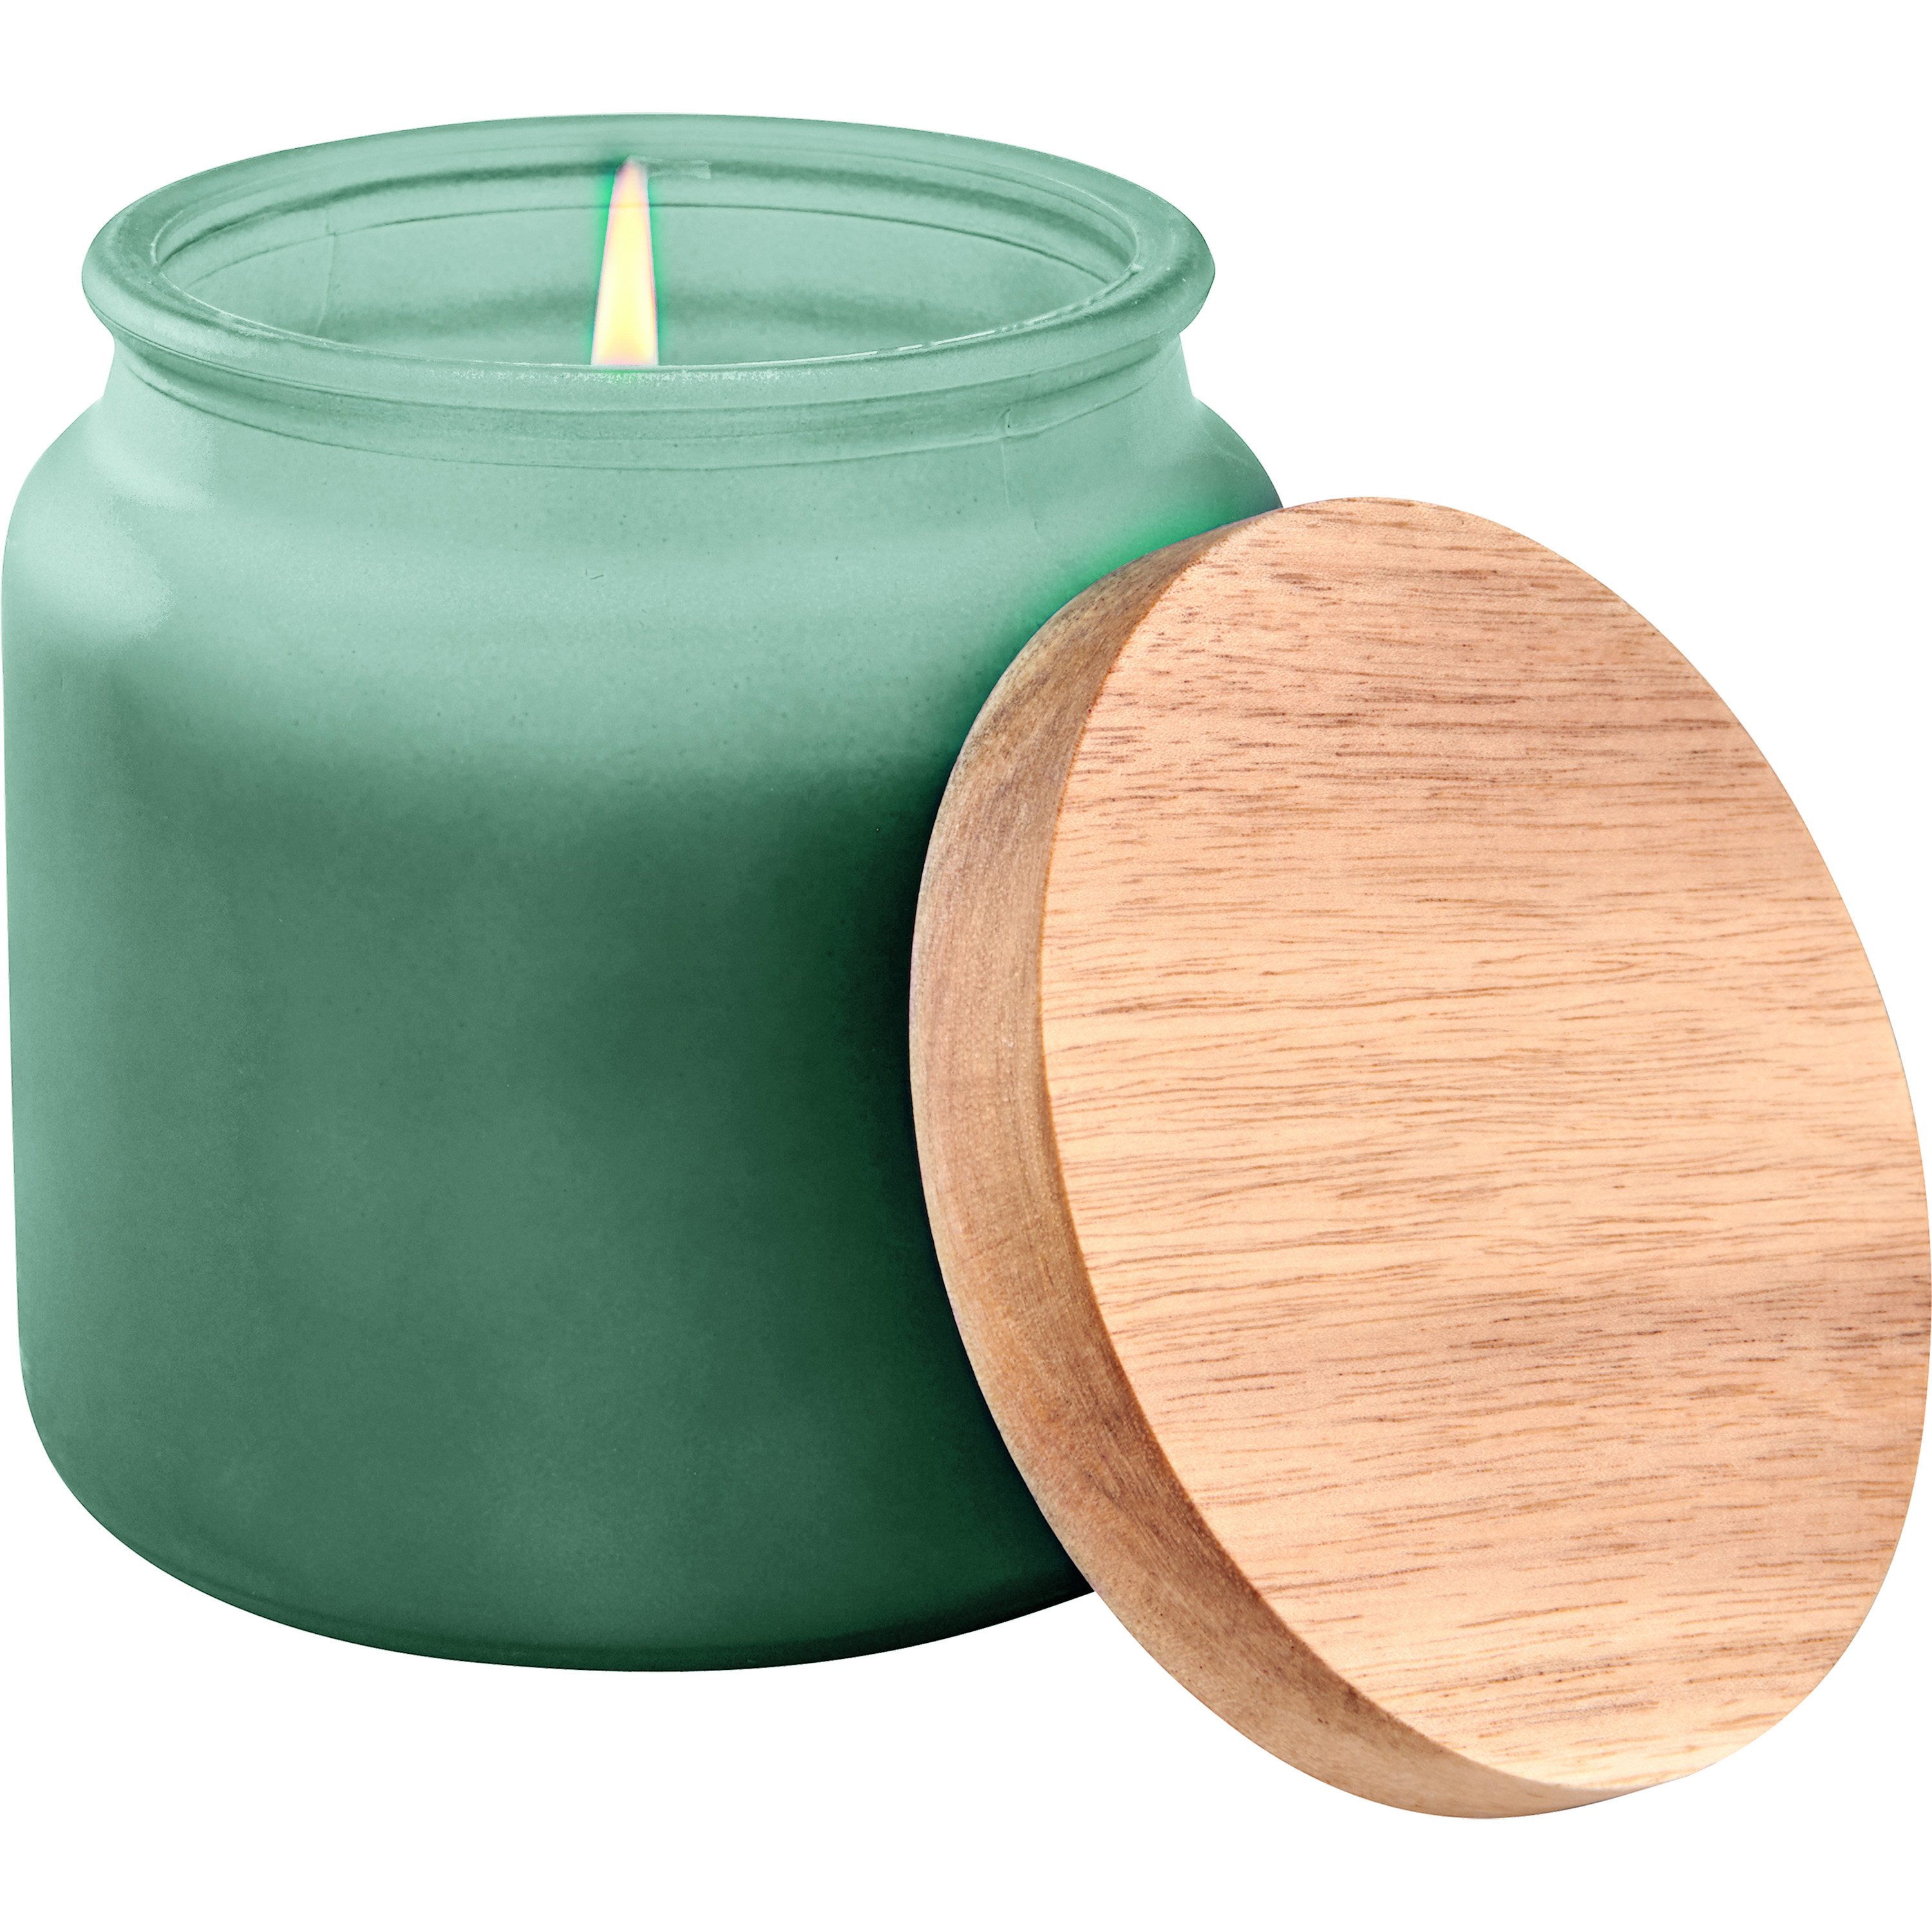 Better Homes & Gardens Green Frosted Glass Single-Wick Candle with Wooden Lid, Soft Cashmere Amber